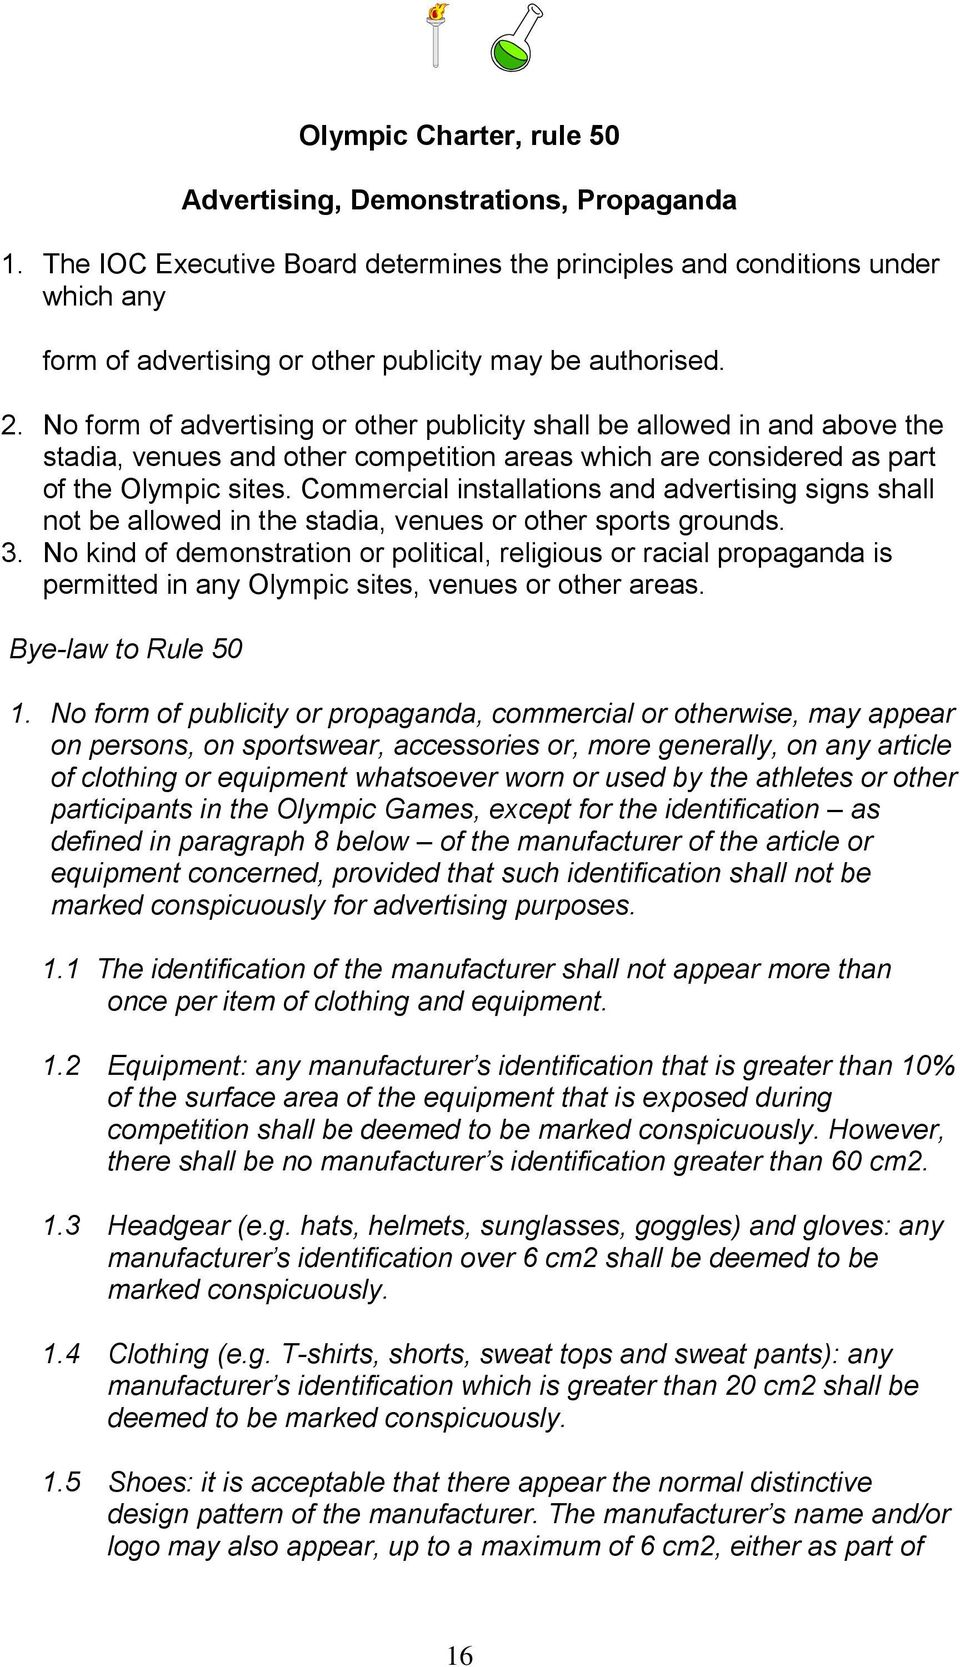 No form of advertising or other publicity shall be allowed in and above the stadia, venues and other competition areas which are considered as part of the Olympic sites.